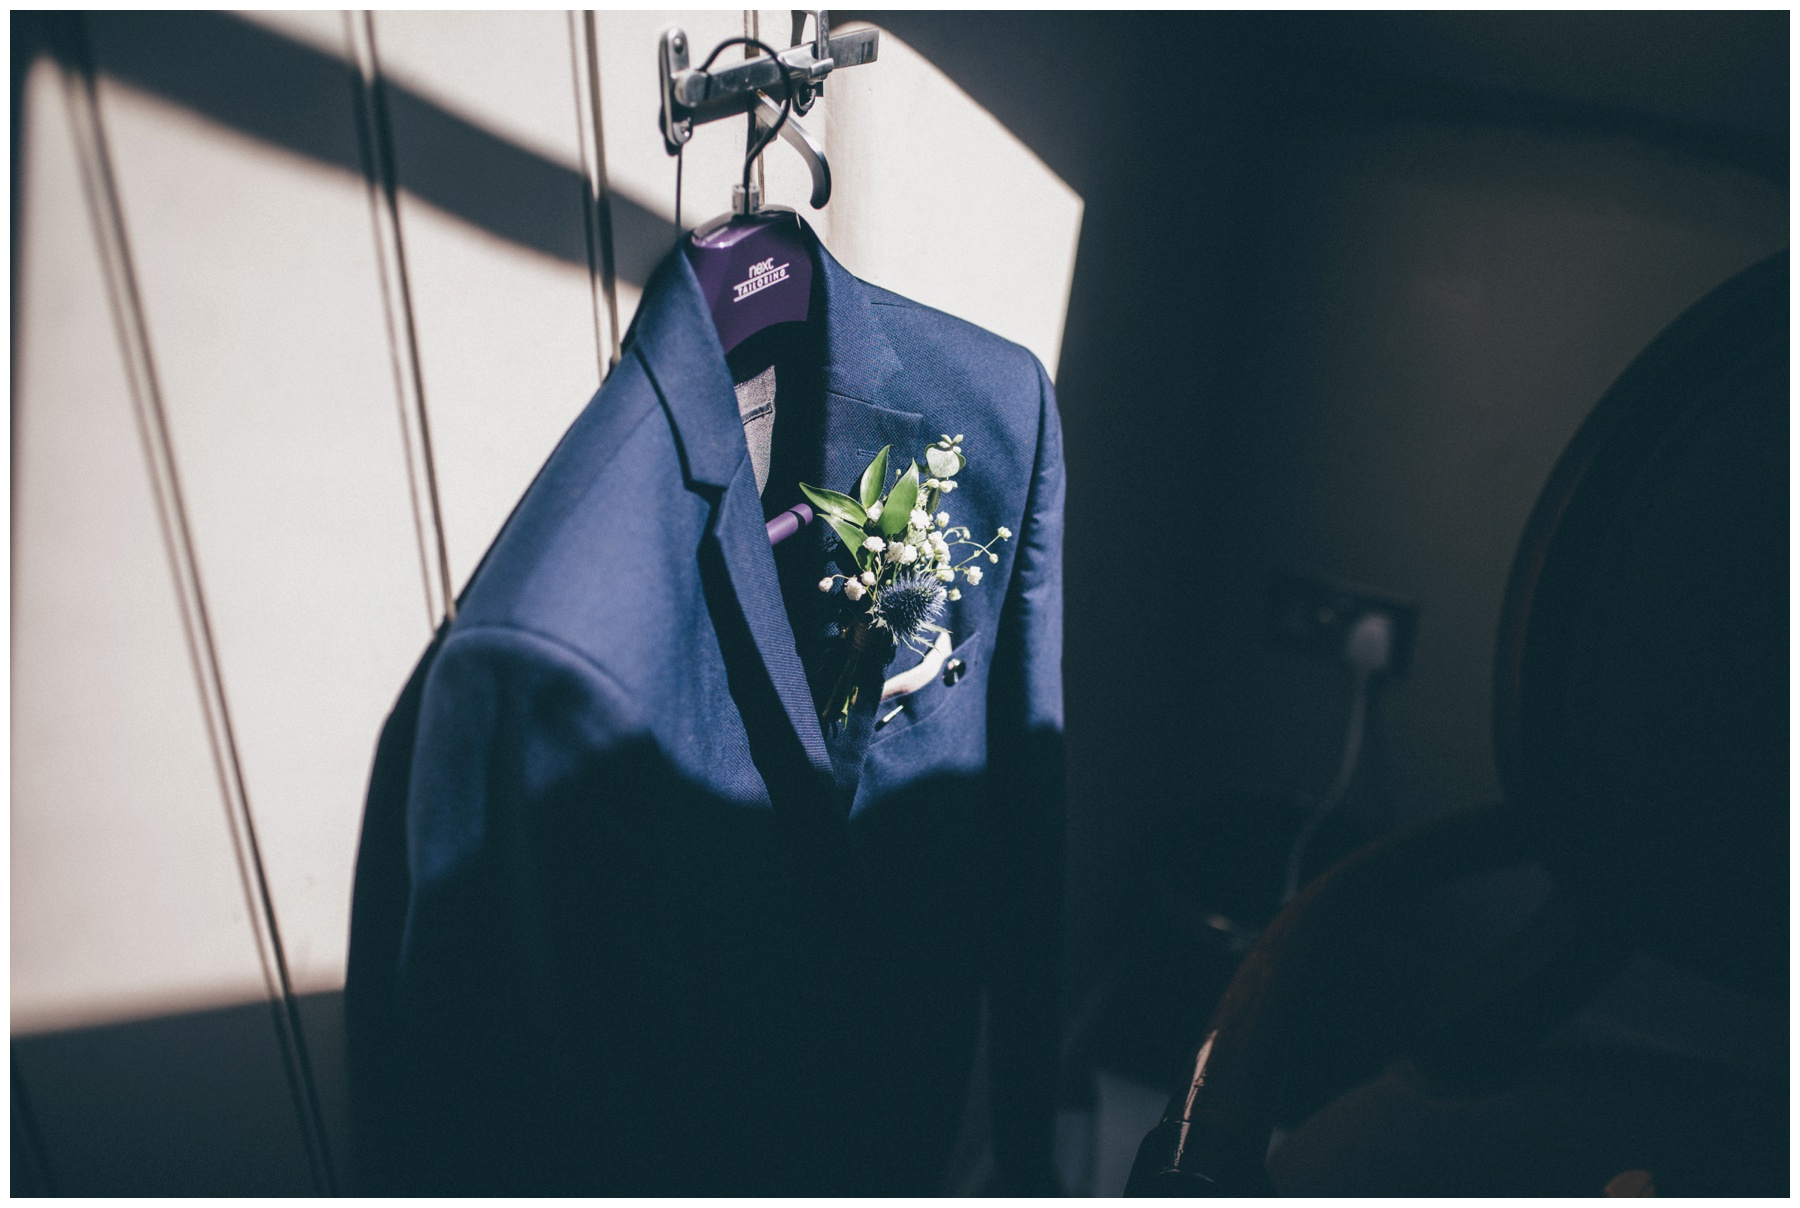 Grooms suit adorned with Thistle buttonhole at Oddfellows in Chester.